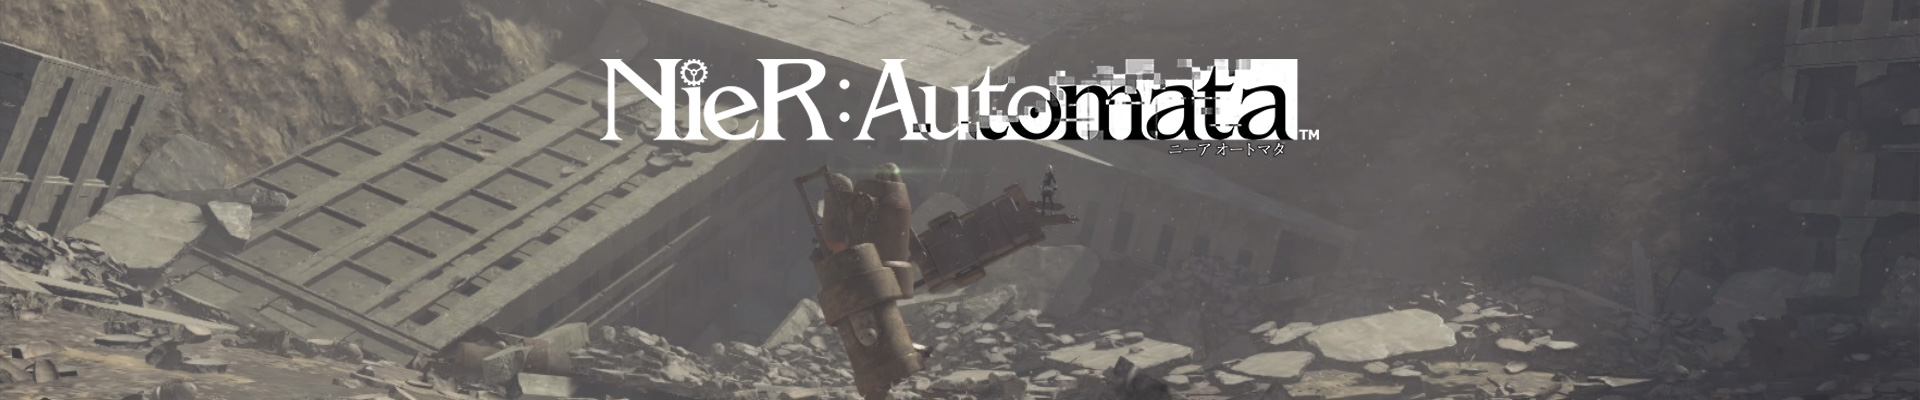 Thoughts on: NieR: Automata